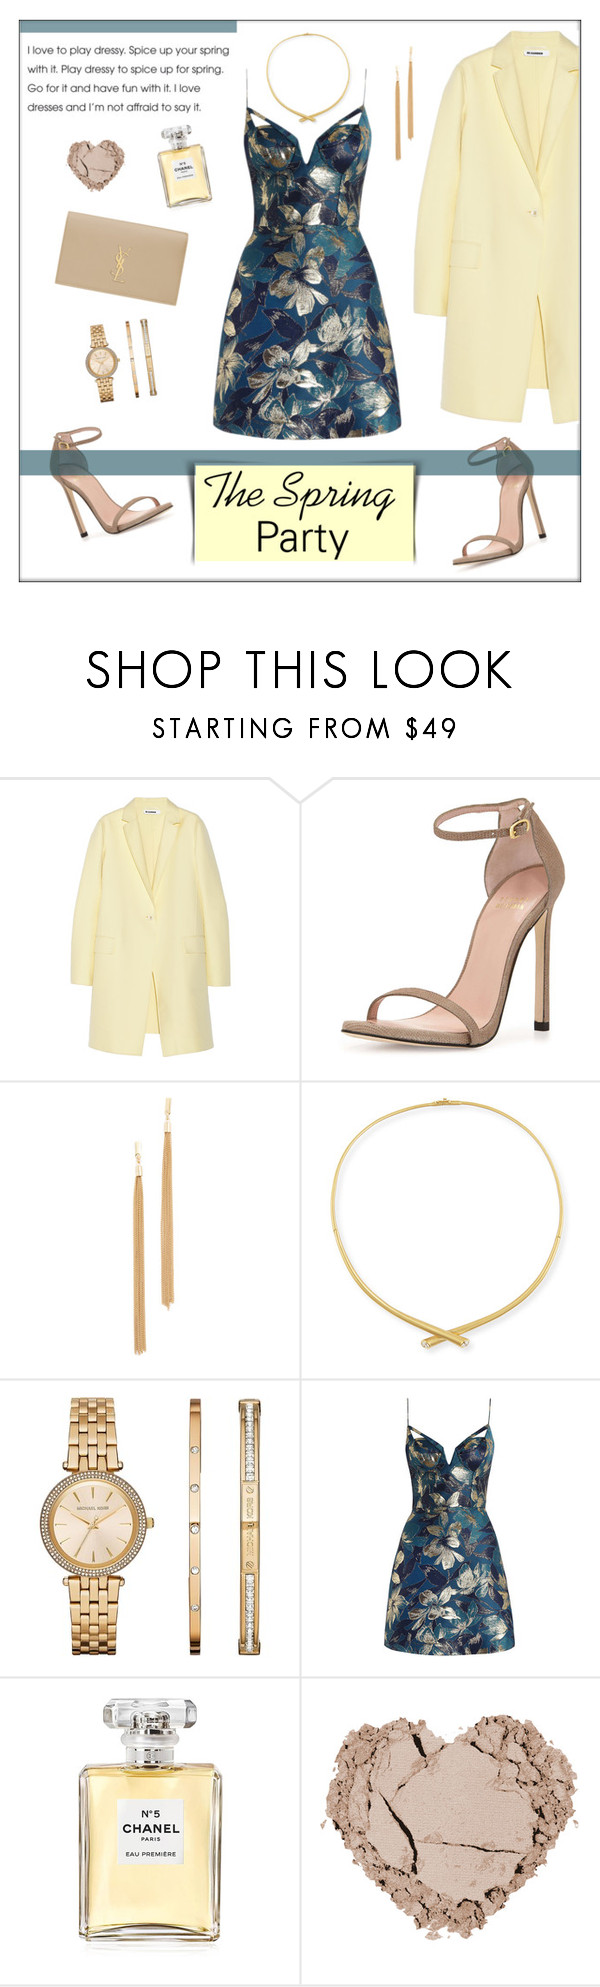 """Ready for Spring Parties"" by ms-mandarinka ❤ liked on Polyvore featuring Jil Sander, Stuart Weitzman, Jules Smith, Carelle, Michael Kors, Zimmermann, Chanel and Yves Saint Laurent"